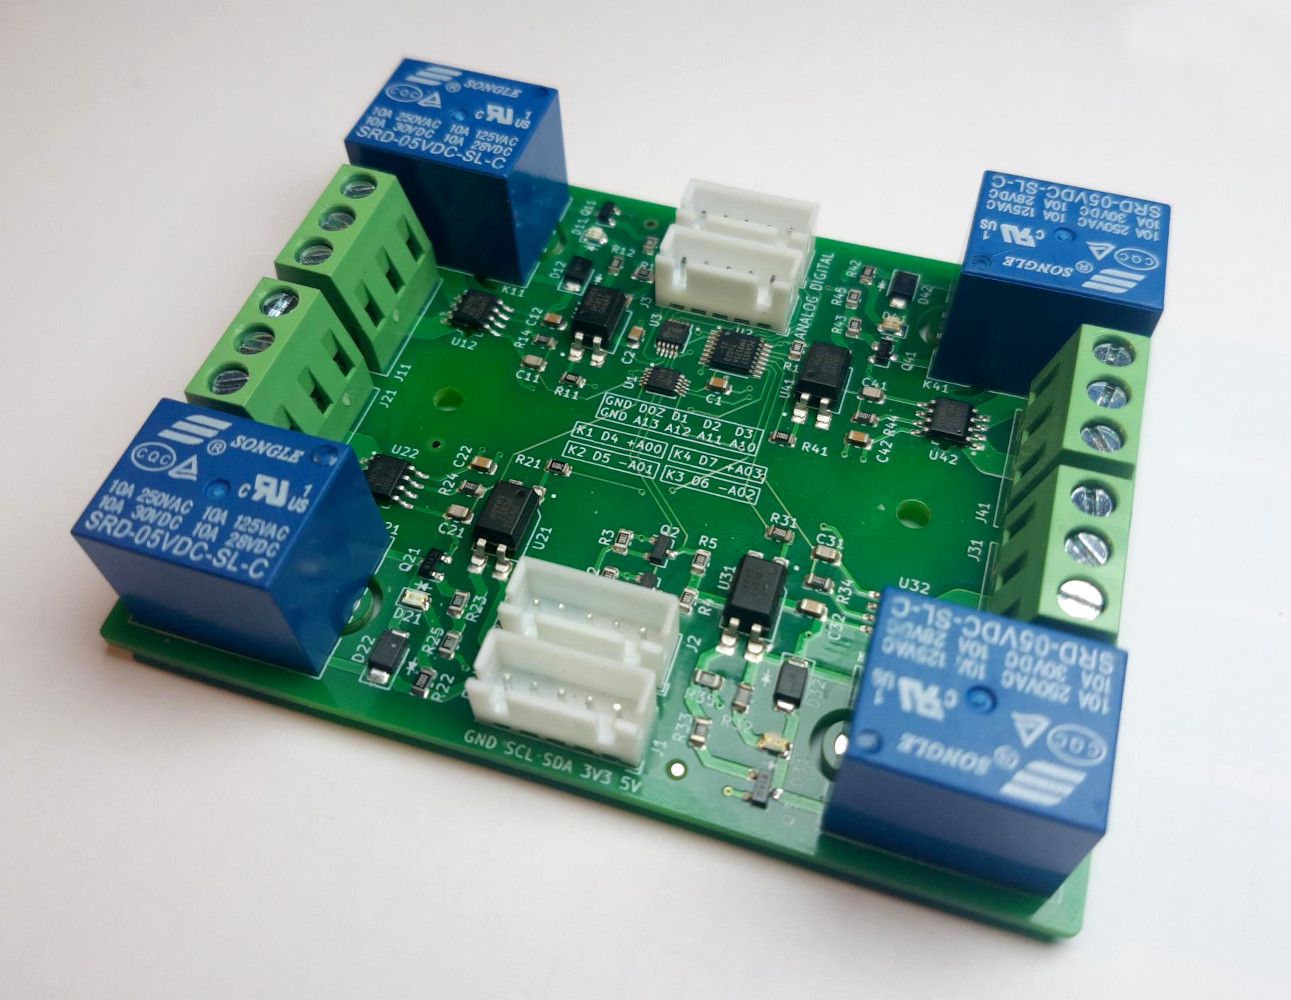 Design And Assembly Of An I2C Relay PCB